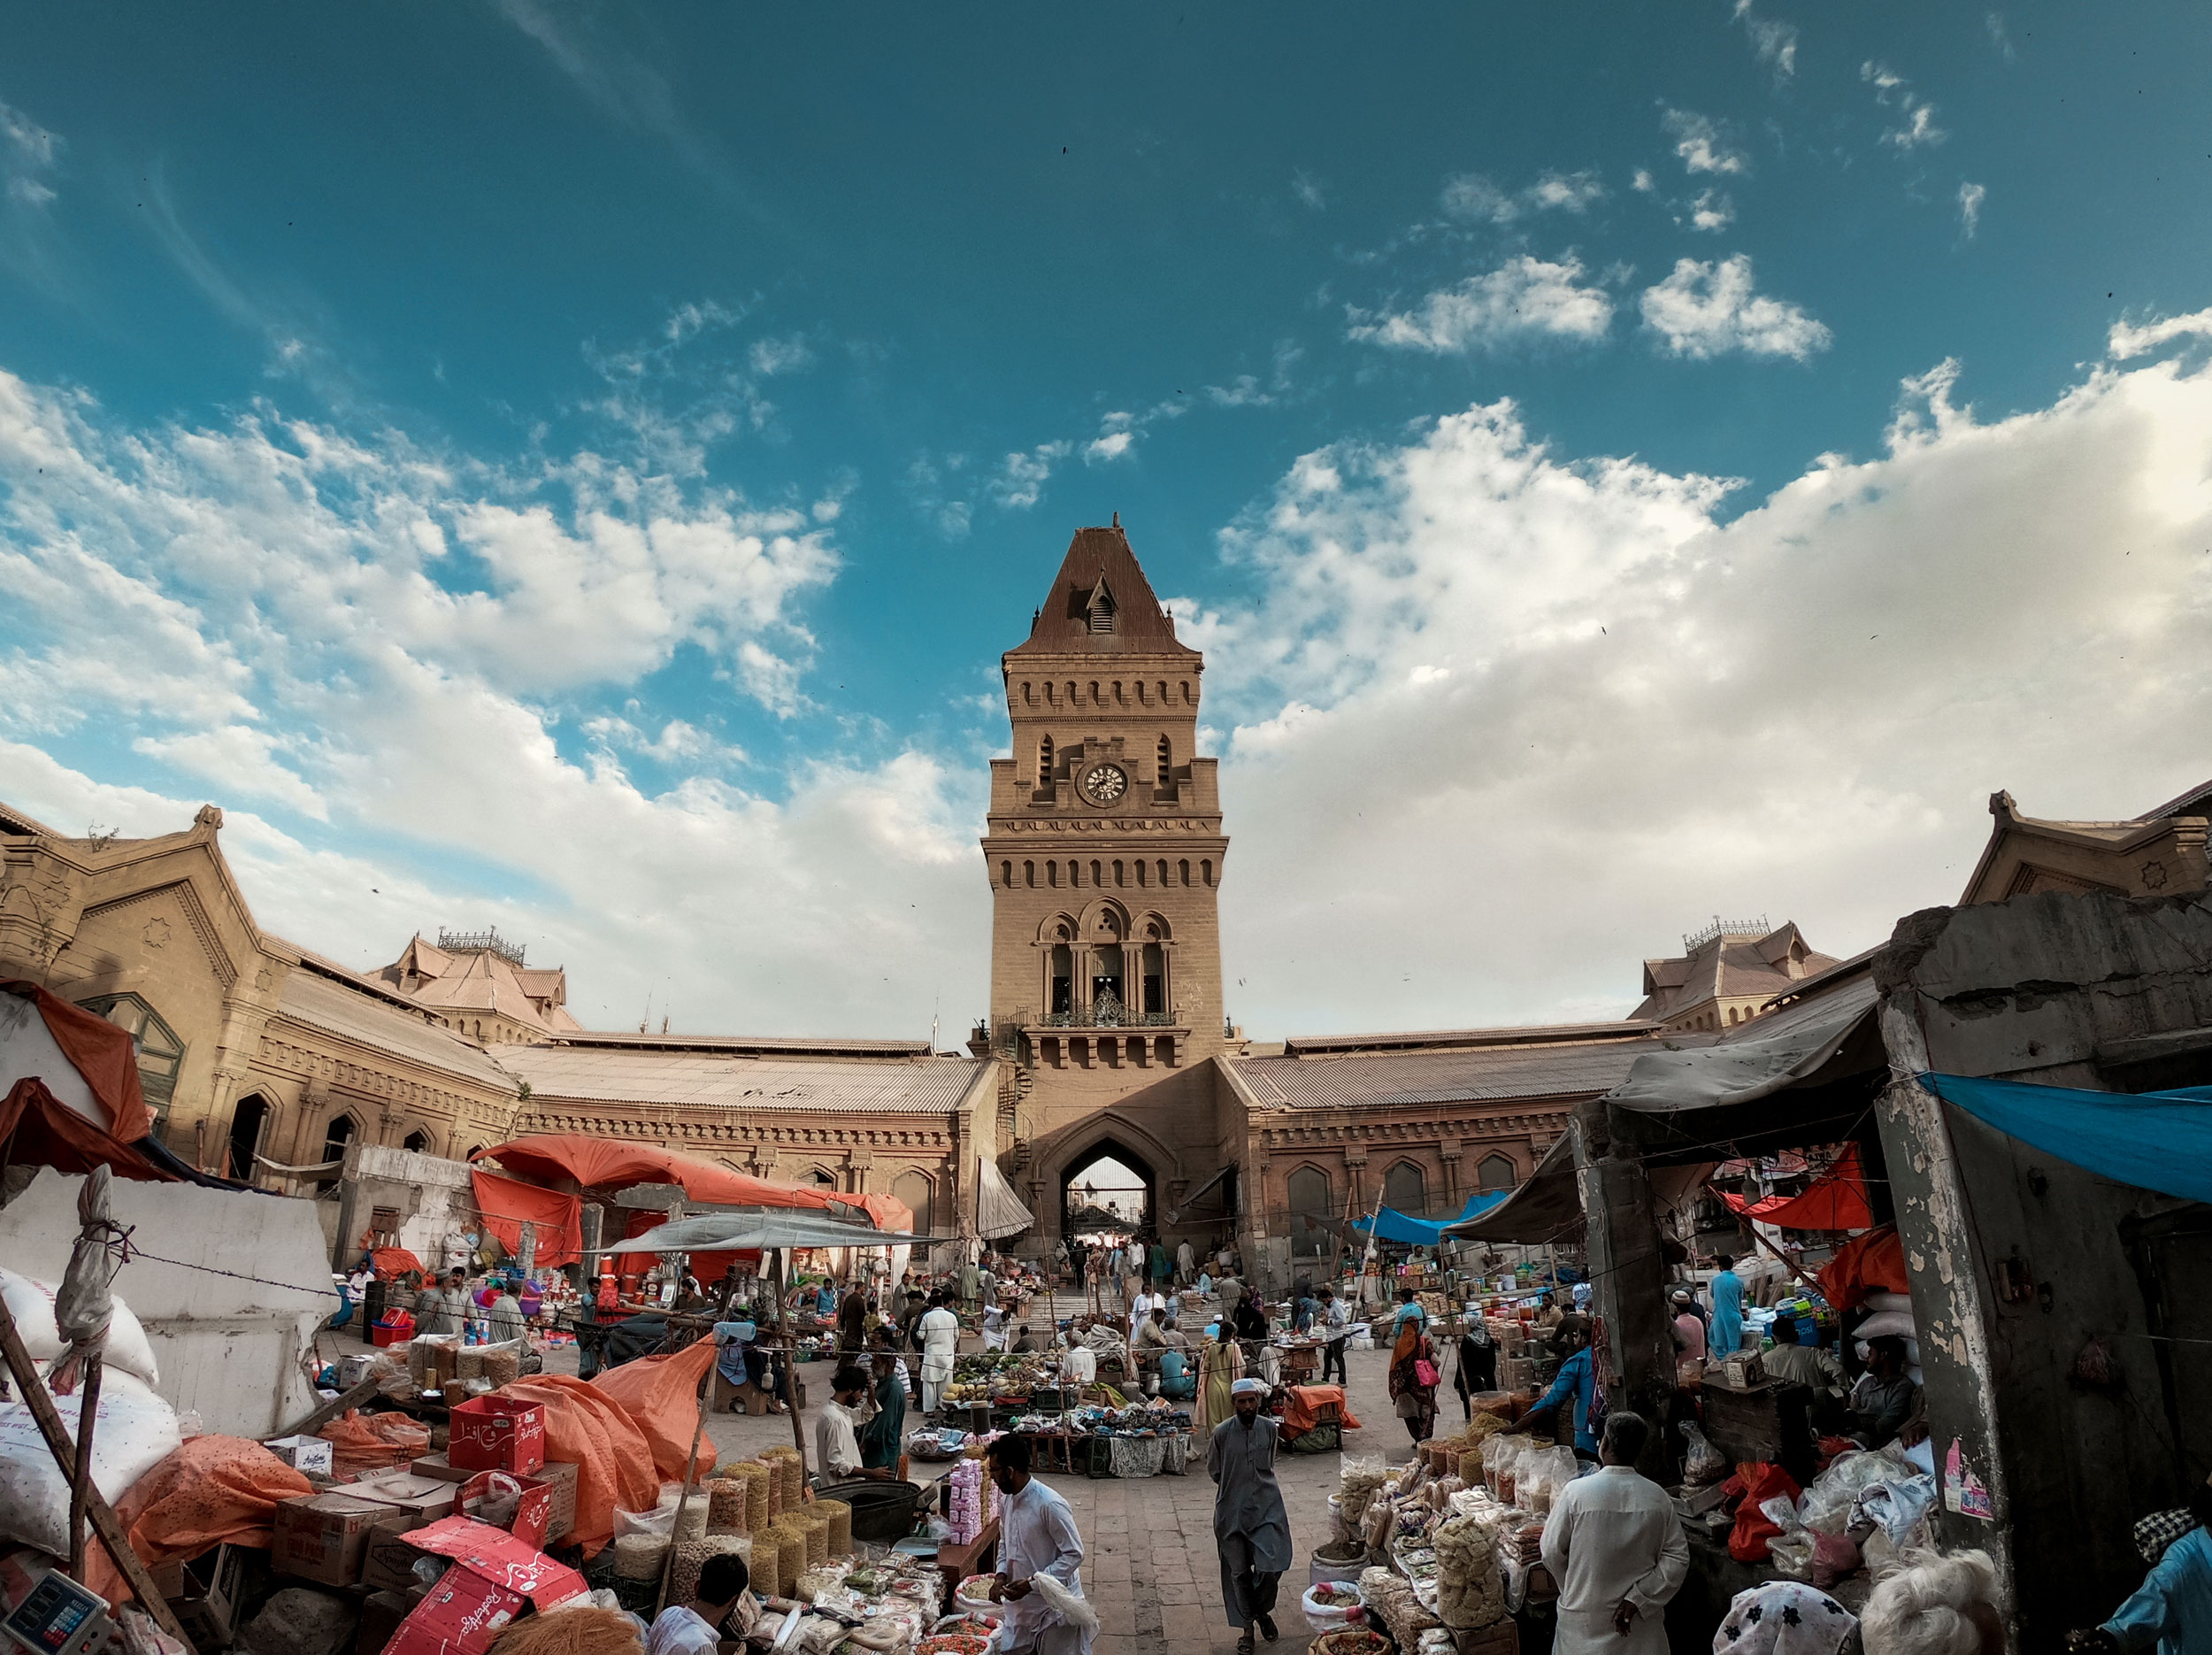 Empress Market in Karachi. People of Pakistan continue to suffer inflation and high utility bills. Prices of basic necessities have skyrocketed. Many small businesses have shut down, people have lost their jobs in all industries, and even big businesses are having a hard time.